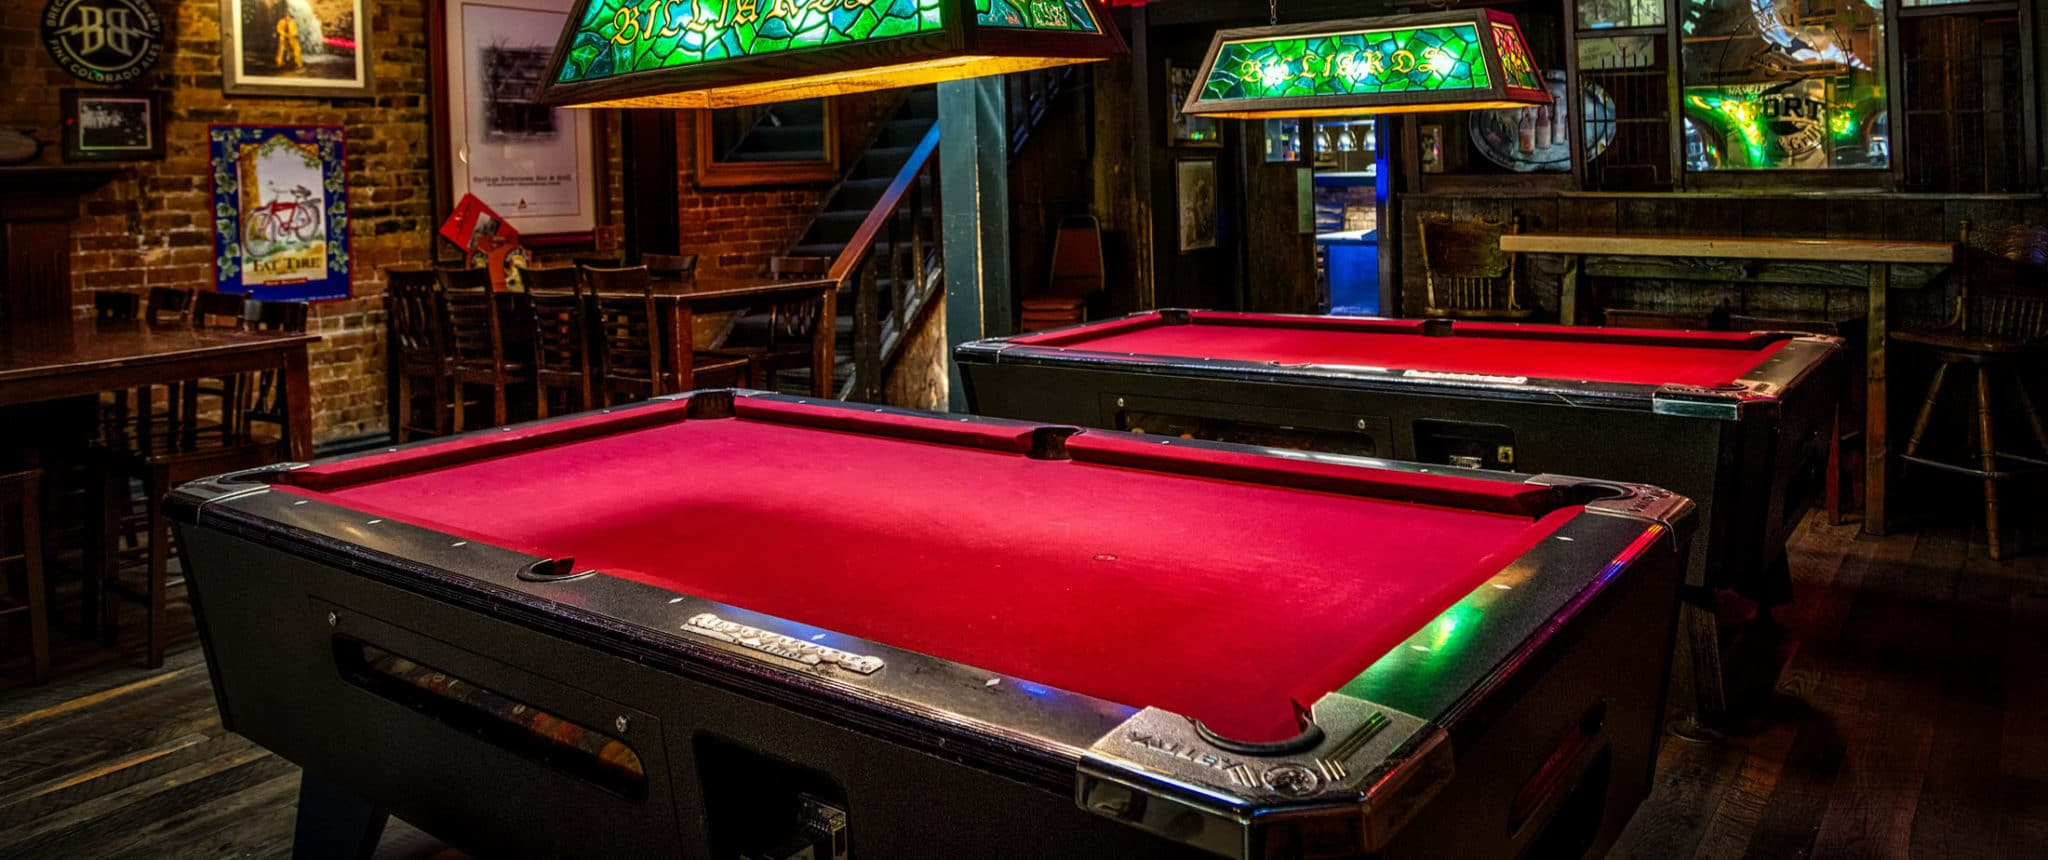 Used Coin Operated Bar Pool Tables We Strive To Make Each Used Bar - Pool table rental atlanta